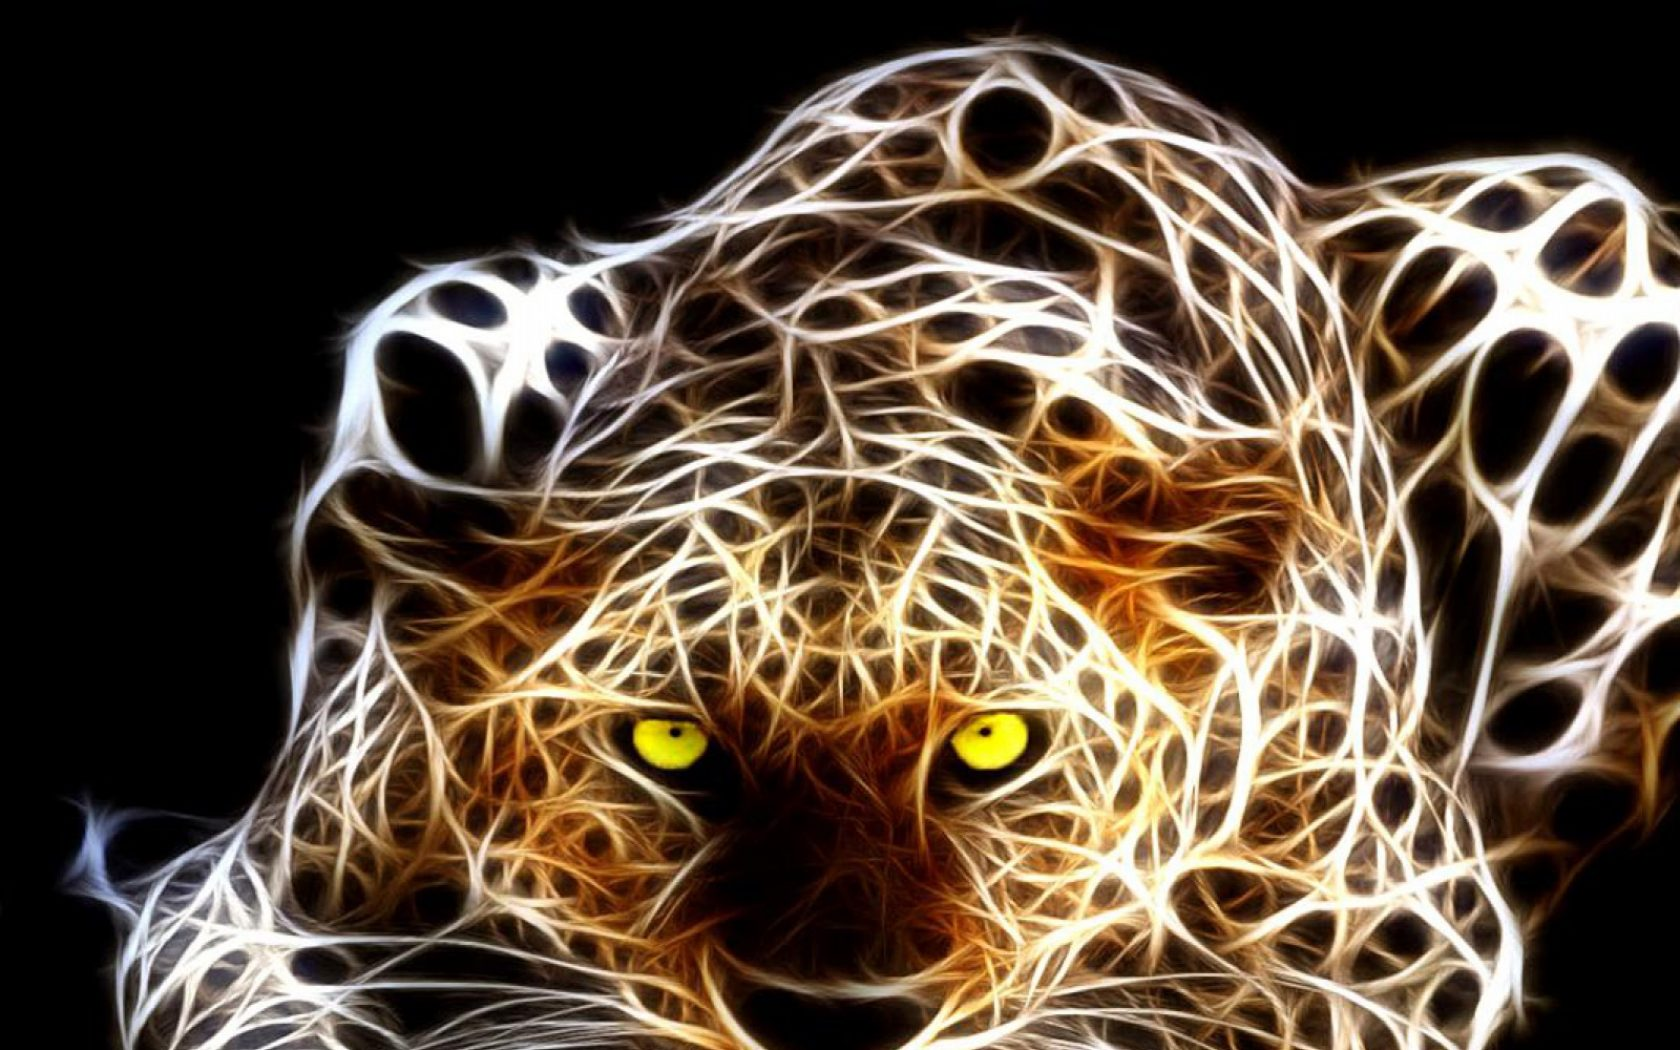 10 New Amazing 3d Animated Wallpapers Hd Full Hd 1080p For: 1680x1050 :: Fondos De Pantalla Y Wallpapers